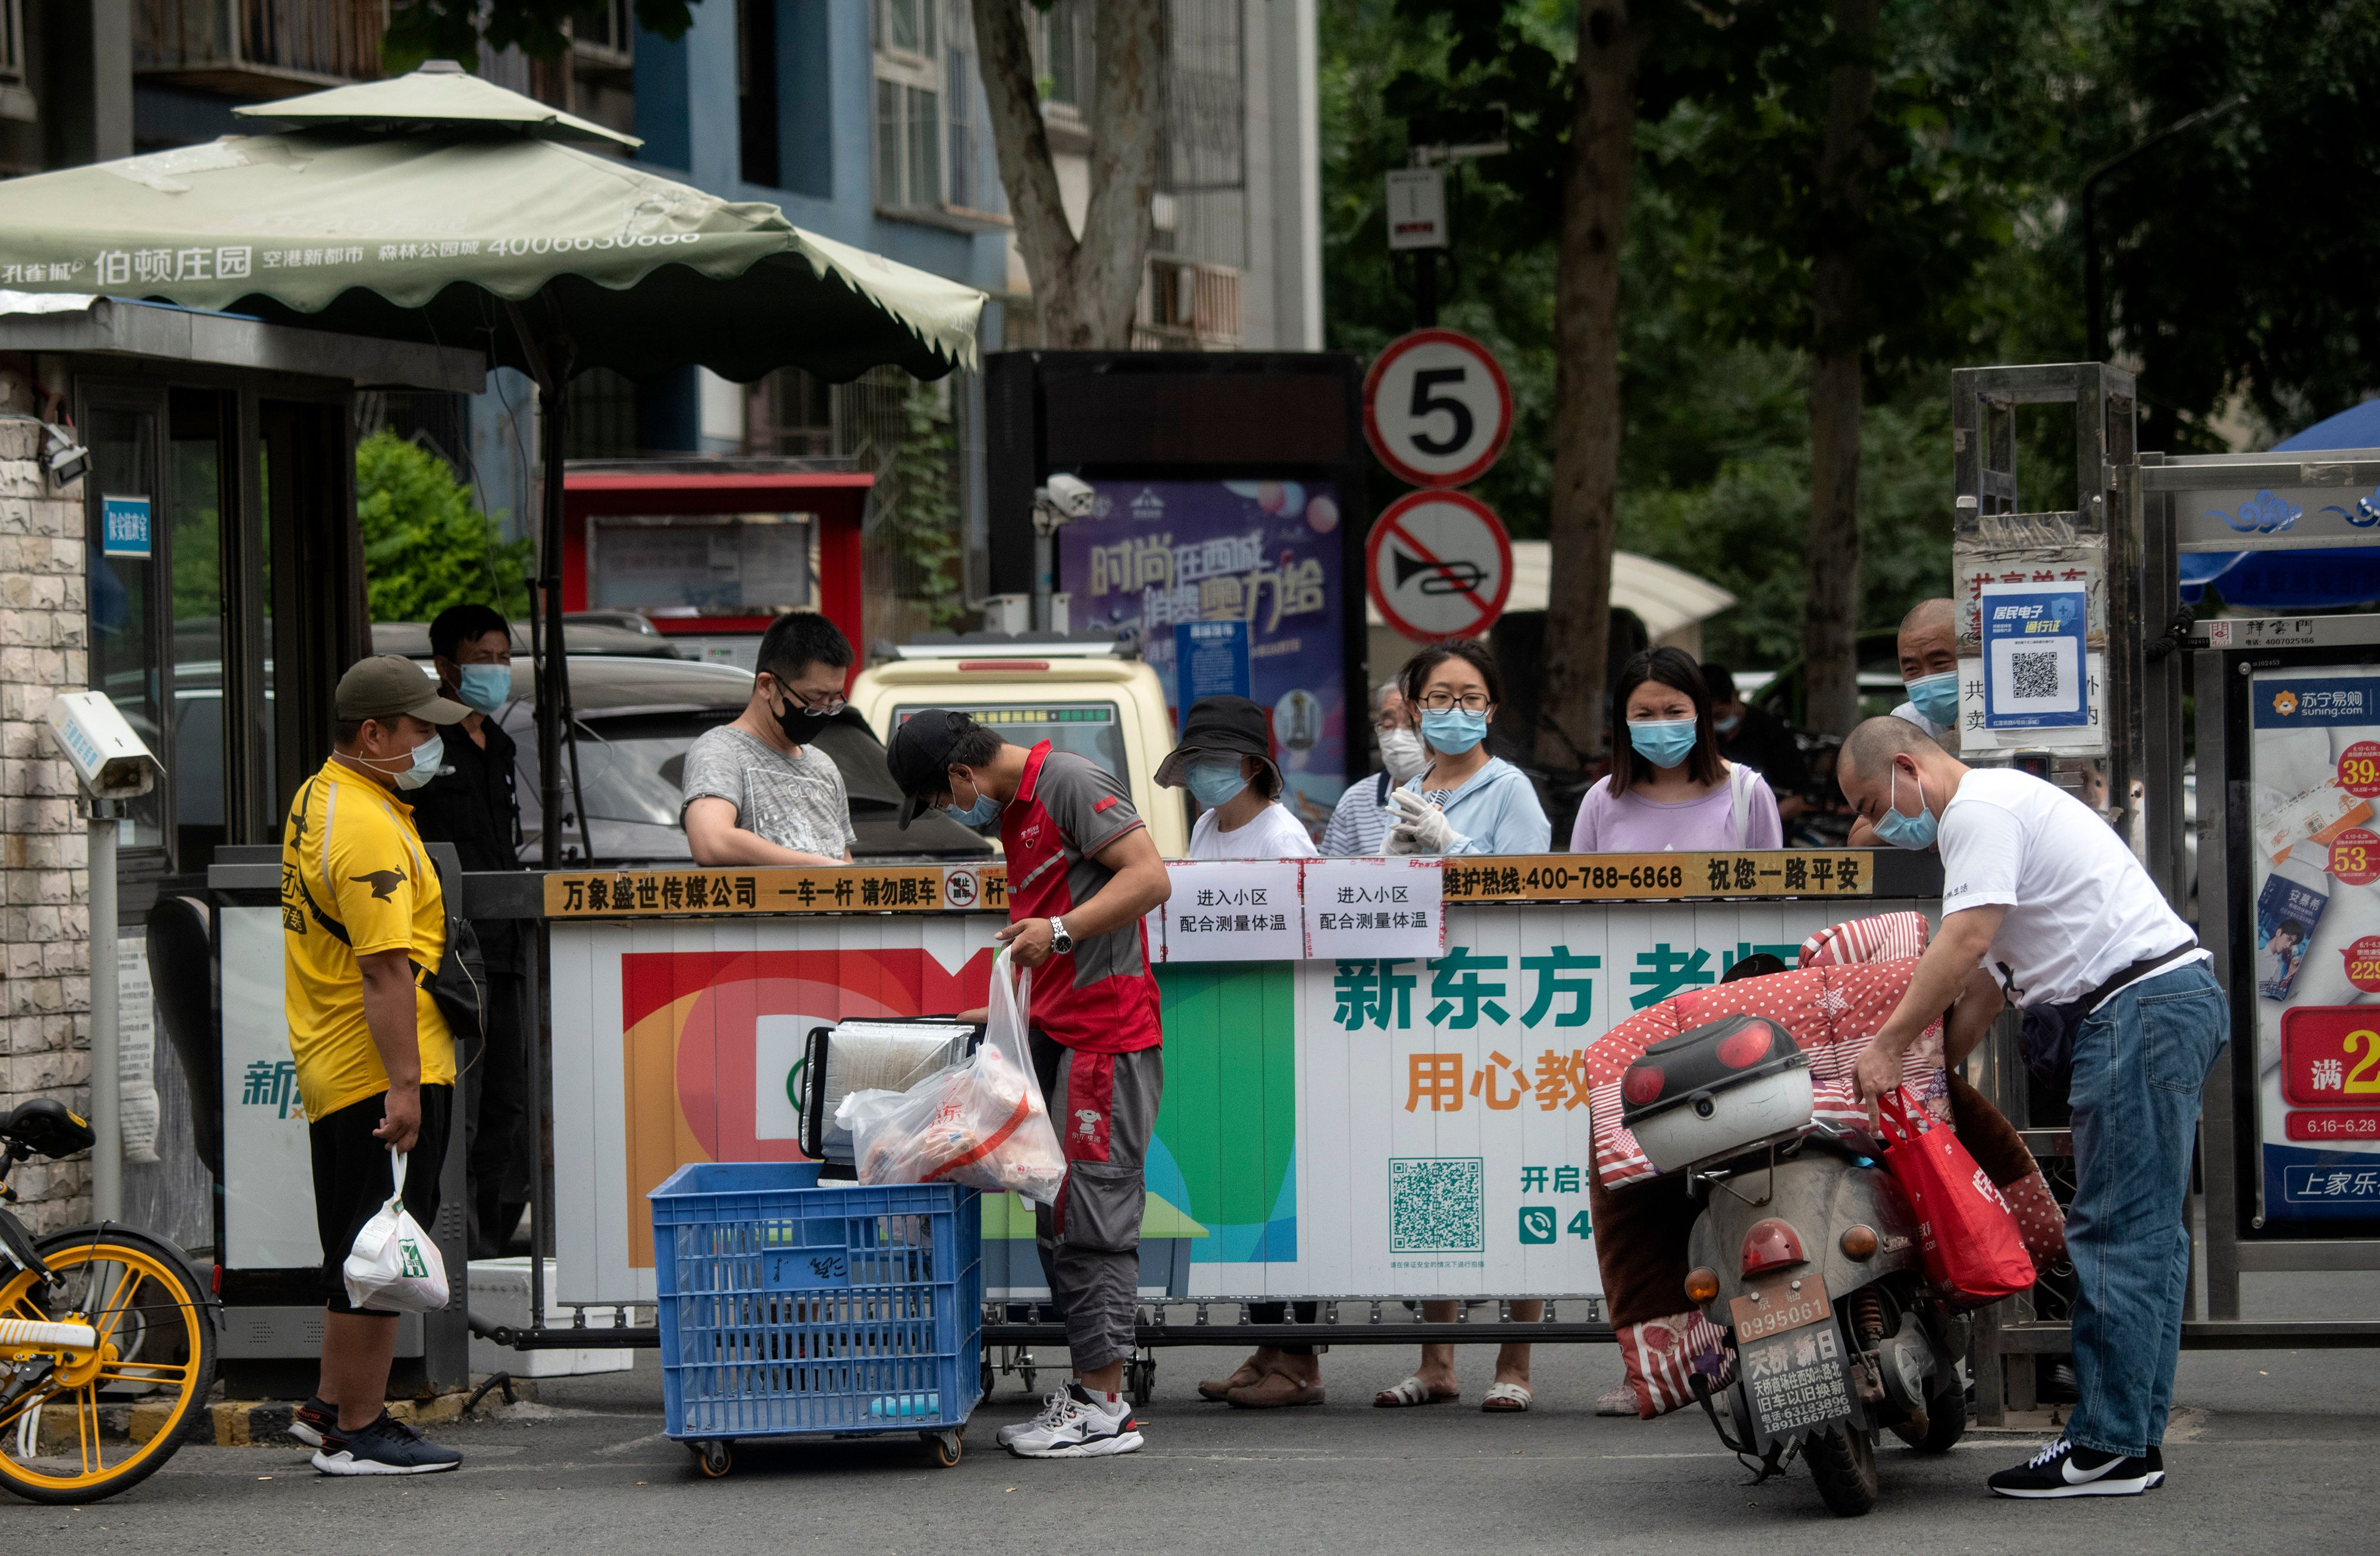 People wearing face masks wait for the delivery of goods they ordered online in a residential area in Xicheng district which is under lockdown after a new COVID-19 coronavirus outbreak near the closed Xinfadi Market in Beijing on June 17, 2020. (Photo by NOEL CELIS/AFP via Getty Images)